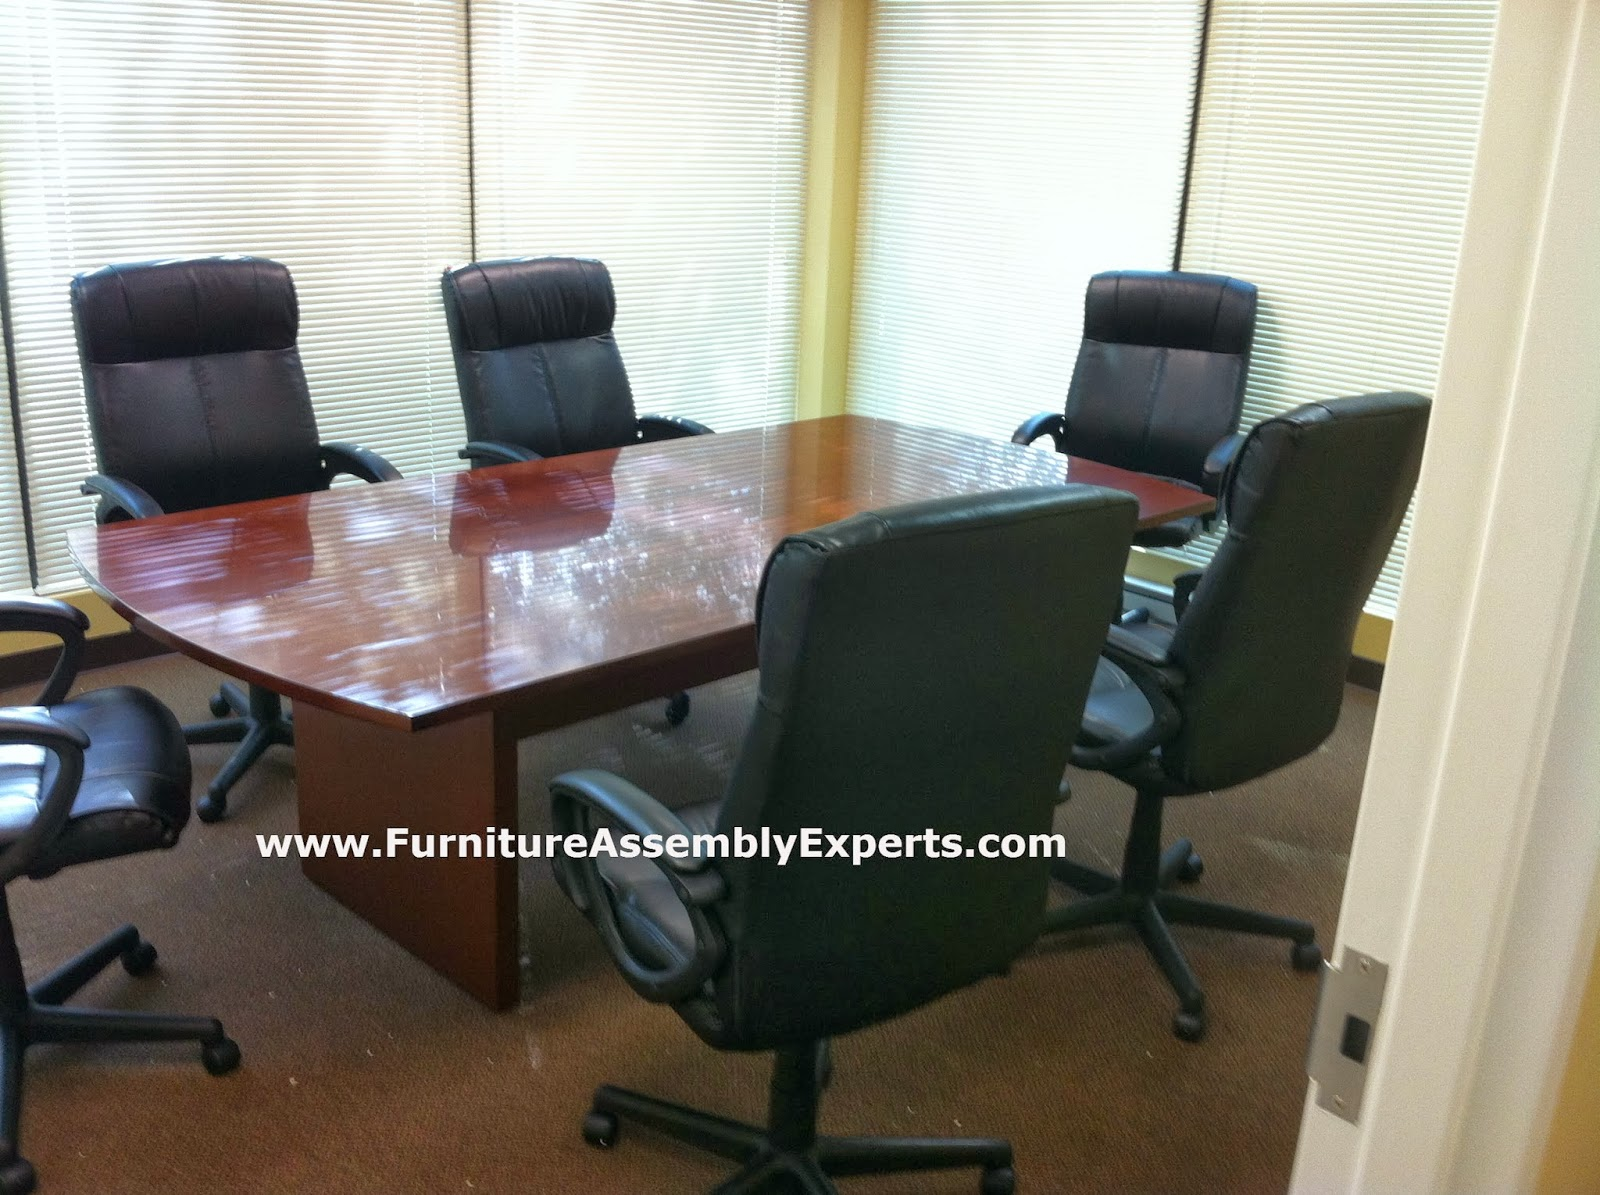 Md office furniture installers same day service desks chairs bookcase - Home office furniture maryland ...